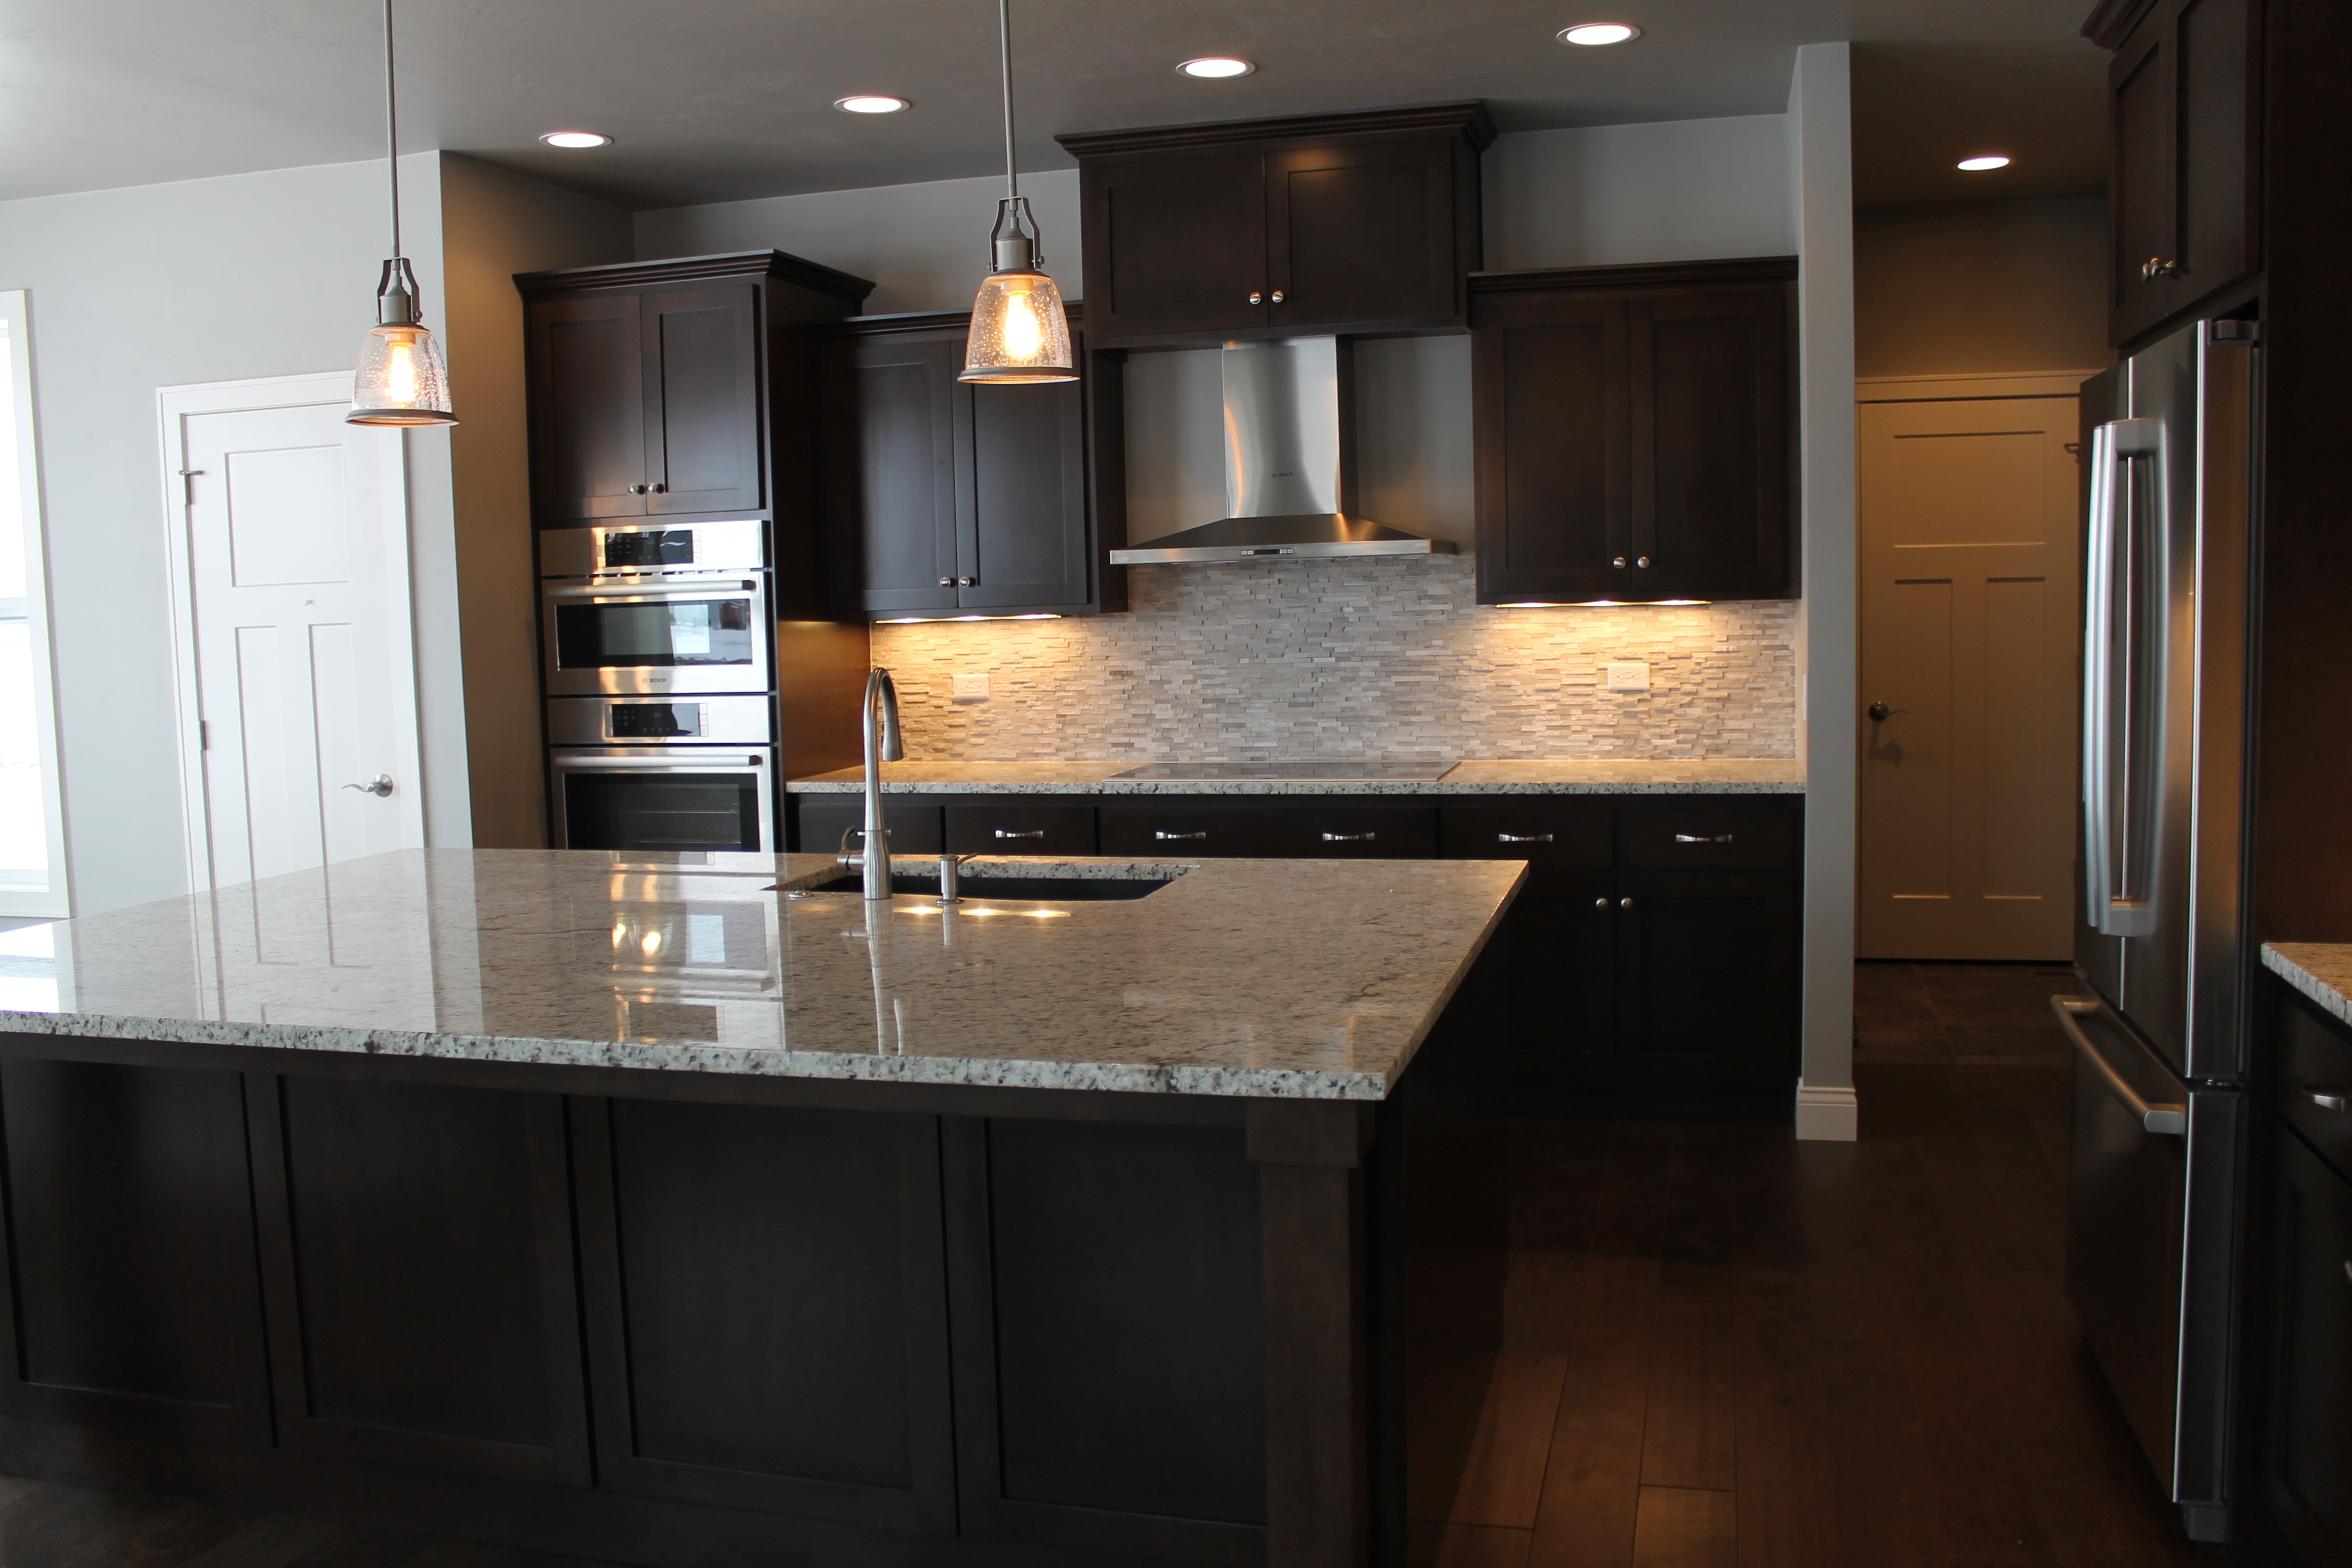 How To Choose Crown Molding For Cabinetry